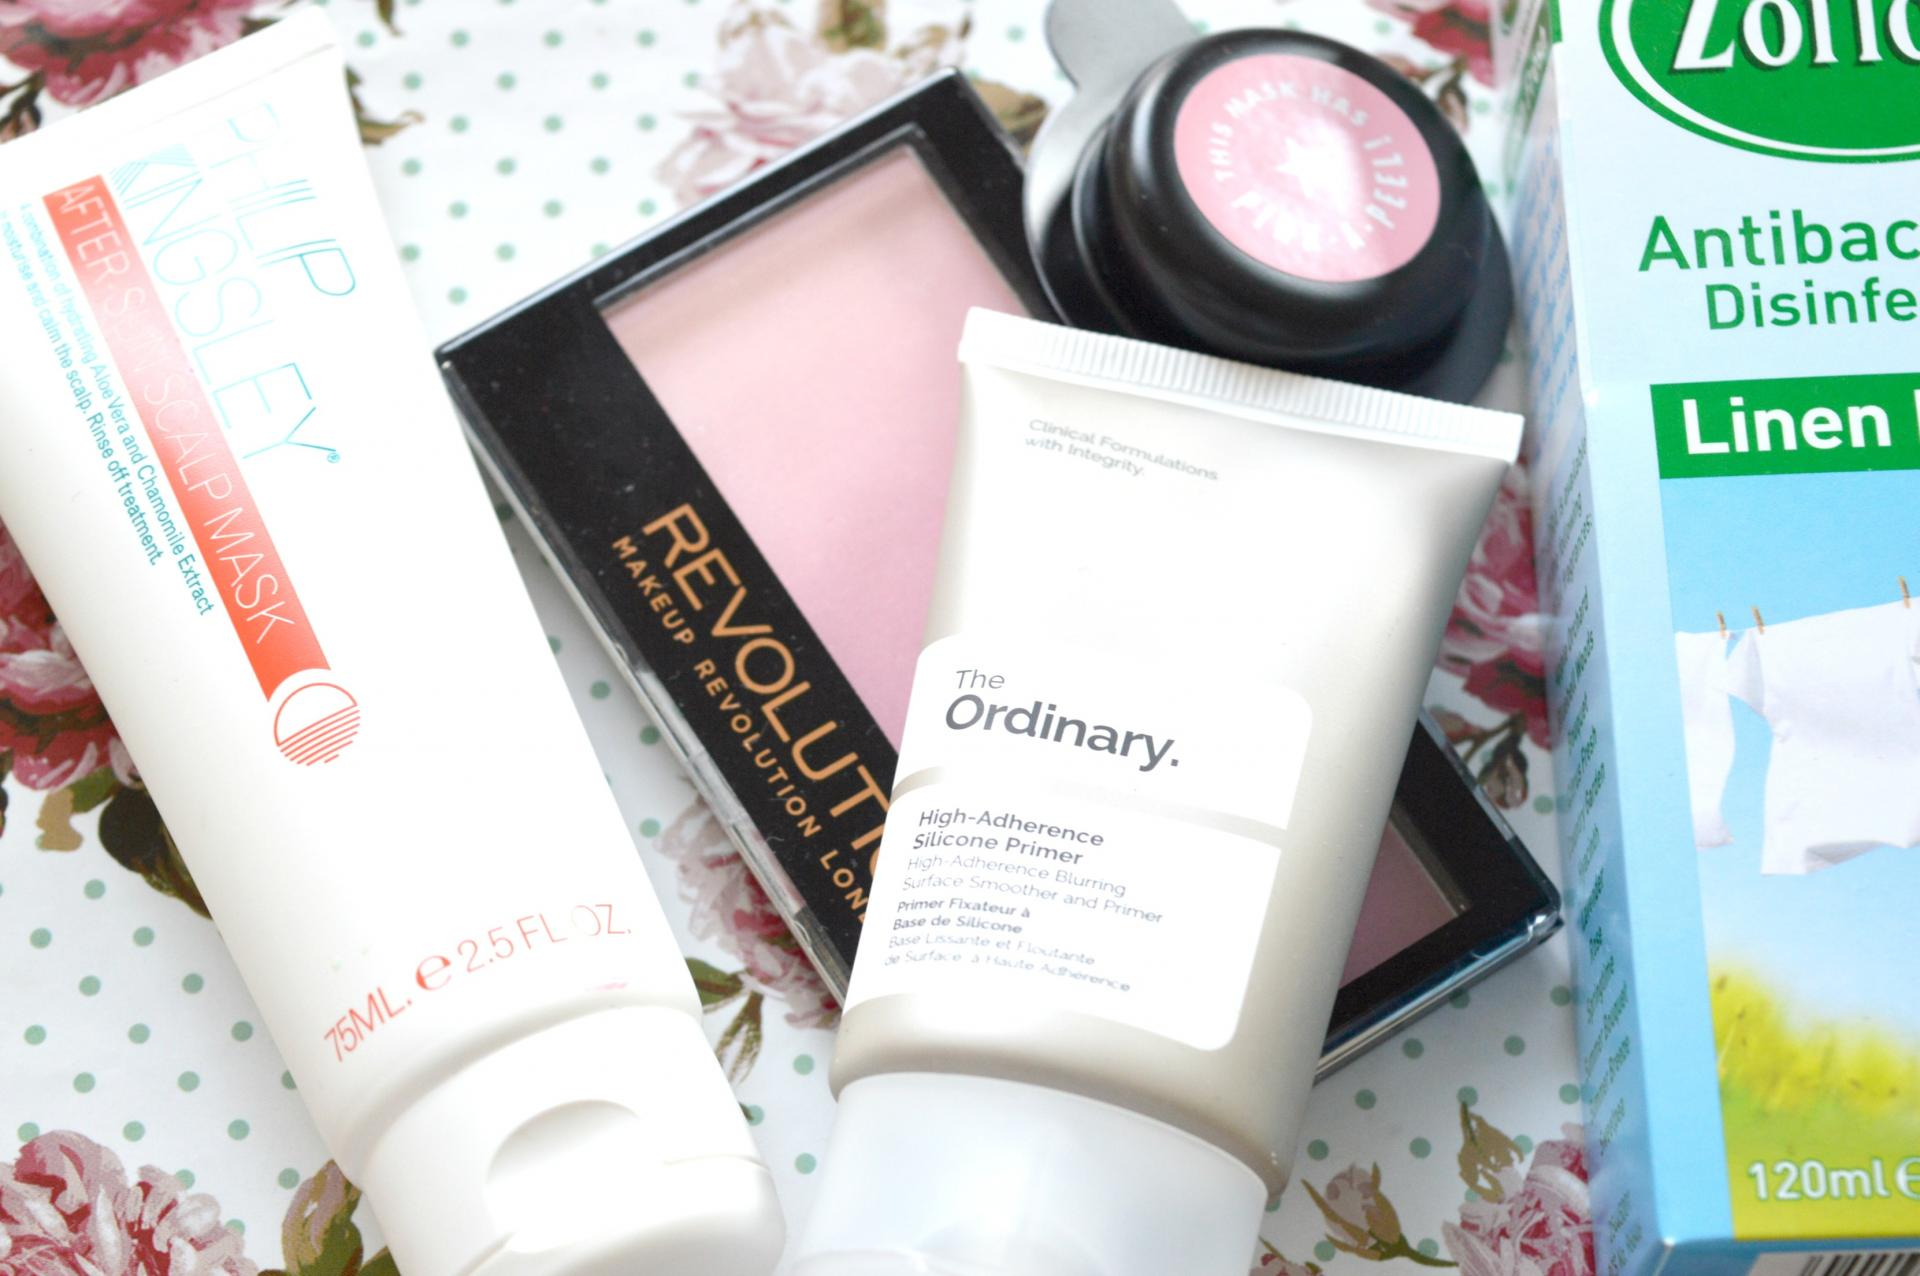 July 2017 Favourites | Linen Fresh Zoflora, Soap and Glory What A Peeling De-Clog Mask, Makeup Revolution Gradient Highlighter in Peach Mood Lights, Philip Kingsley After-Sun Scalpmask and The Ordinary High-Adherence Silicone Primer